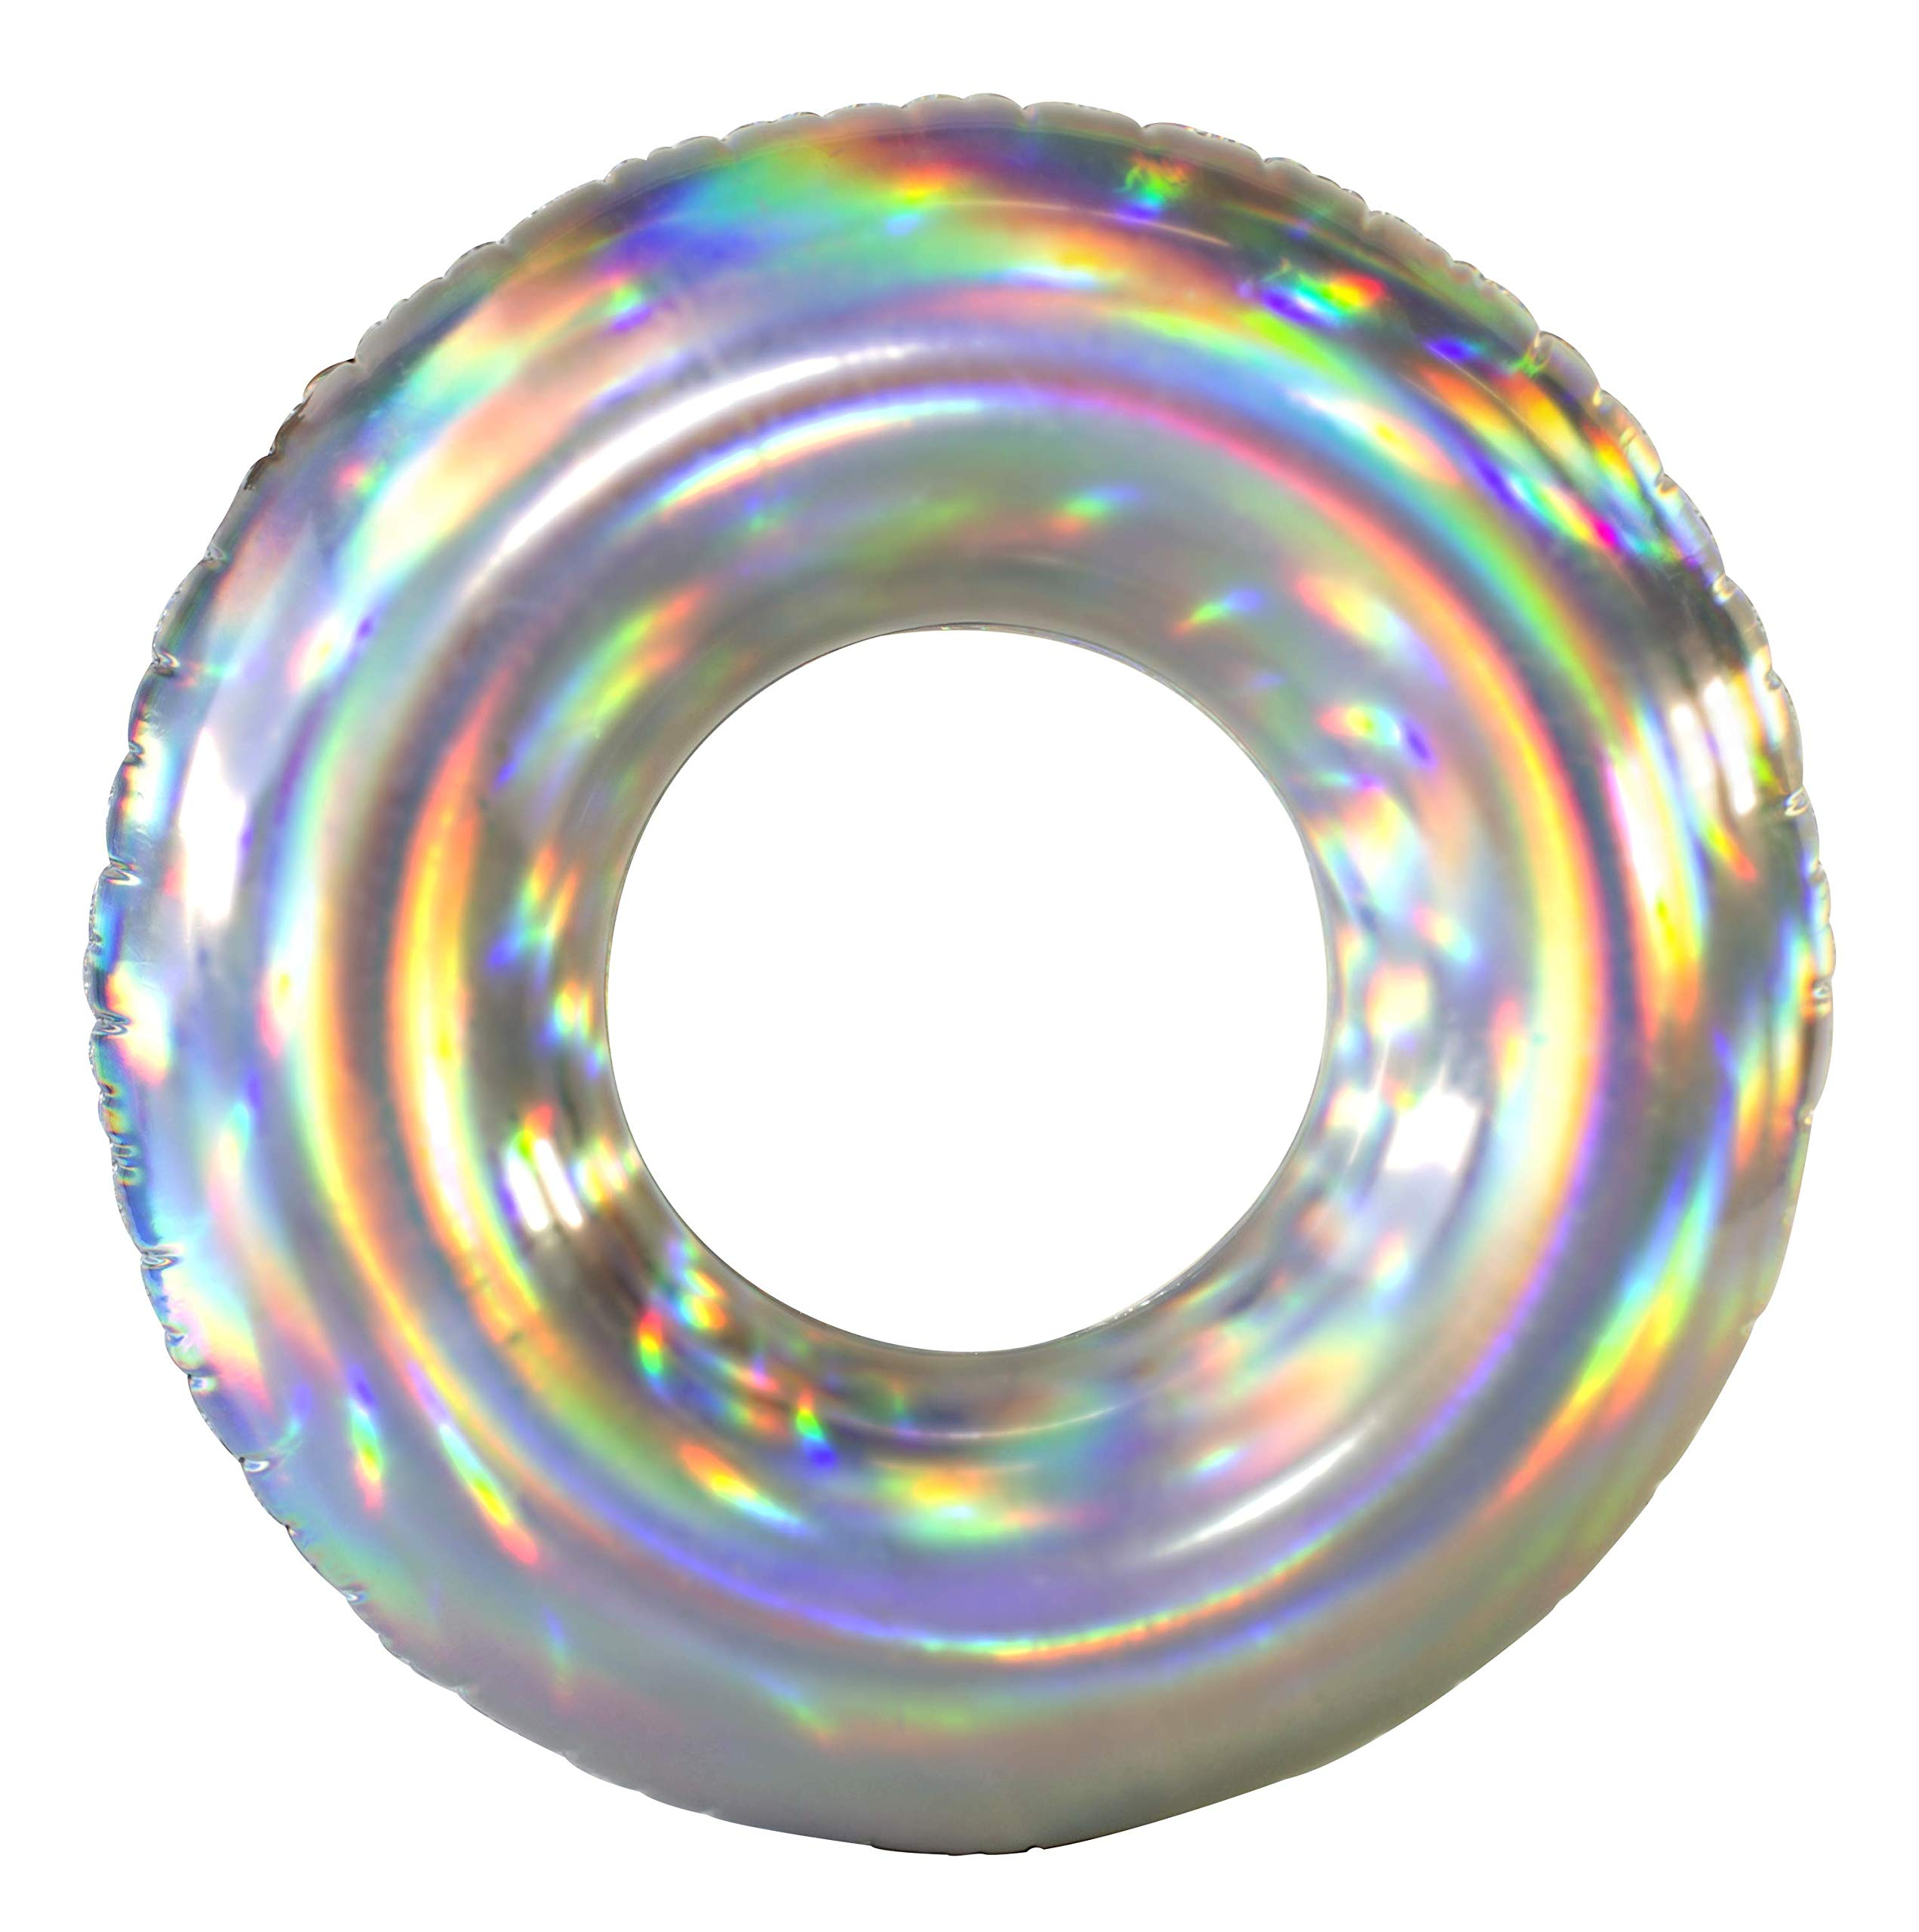 Poolcandy Jumbo Holographic Pool Tube - Worlds First Inflatable Holographic Pool Float - Amazing Rainbow Color Effect in The Sun- Beach Pool or Lake Extra Large Size Swim Rings by Poolcandy